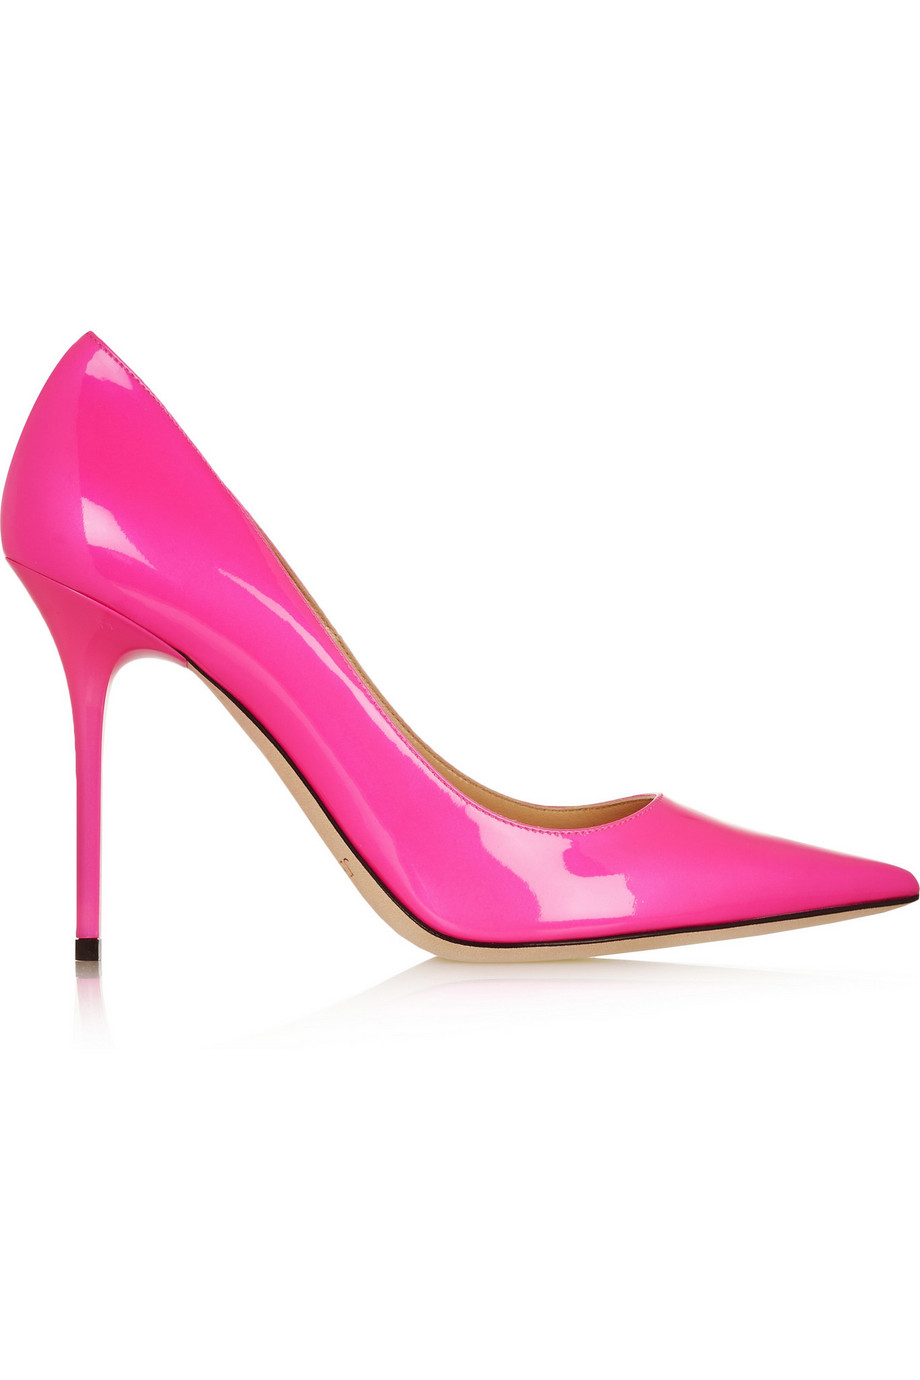 Jimmy Choo Abel Neon Patent-Leather Pumps, Pink, Women's US Size: 9.5, Size: 40